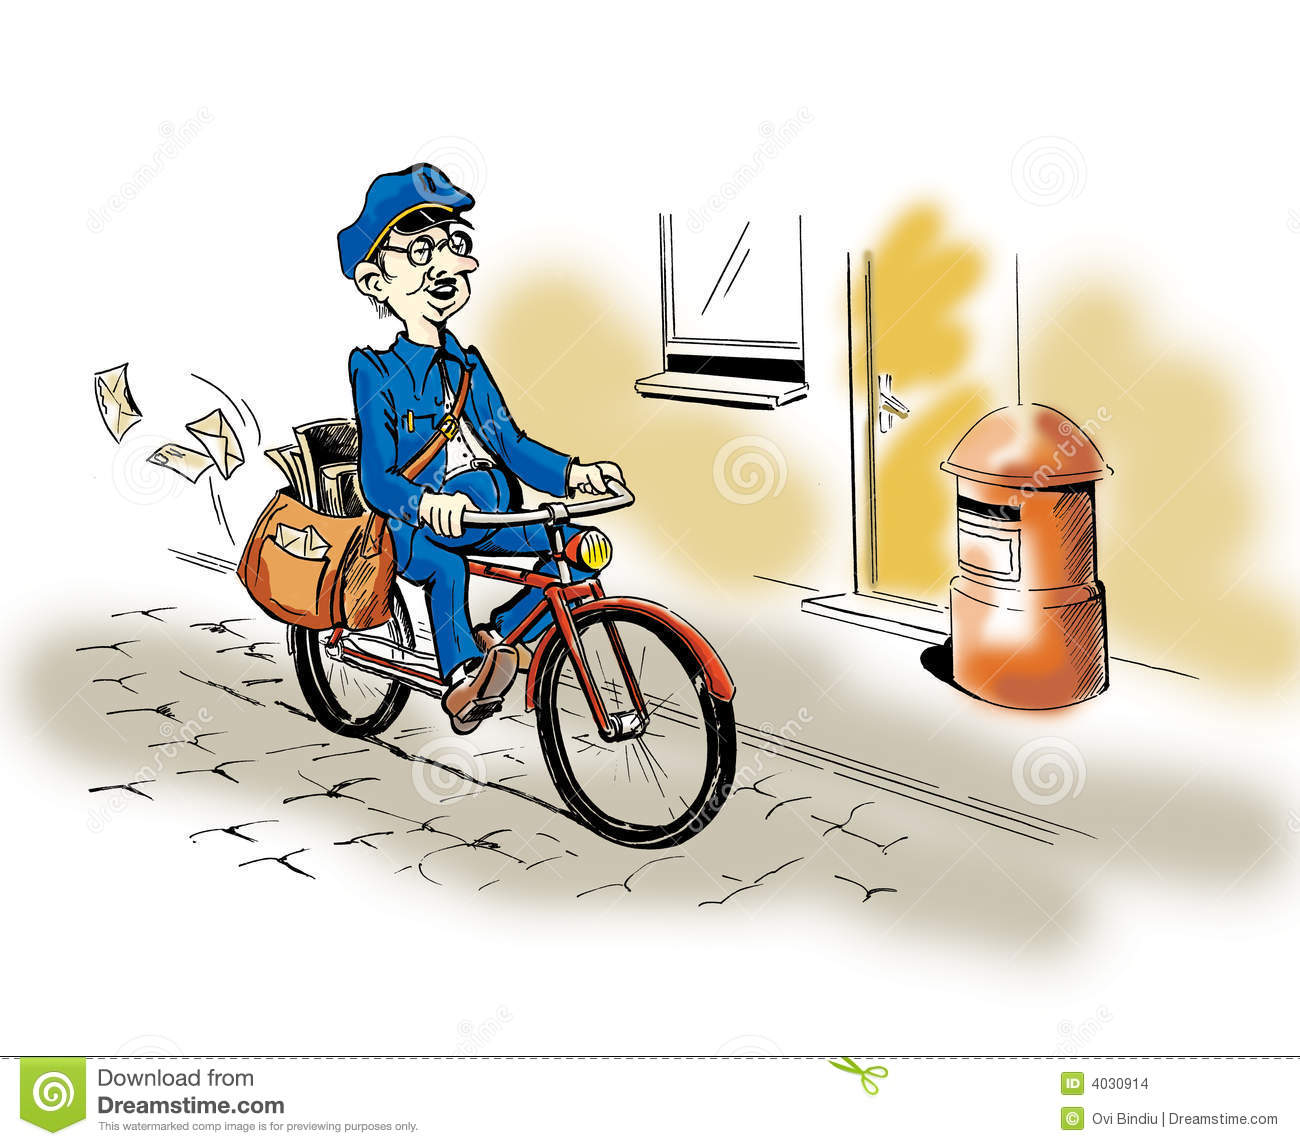 Postman Bike Stock Photos, Images, & Pictures.